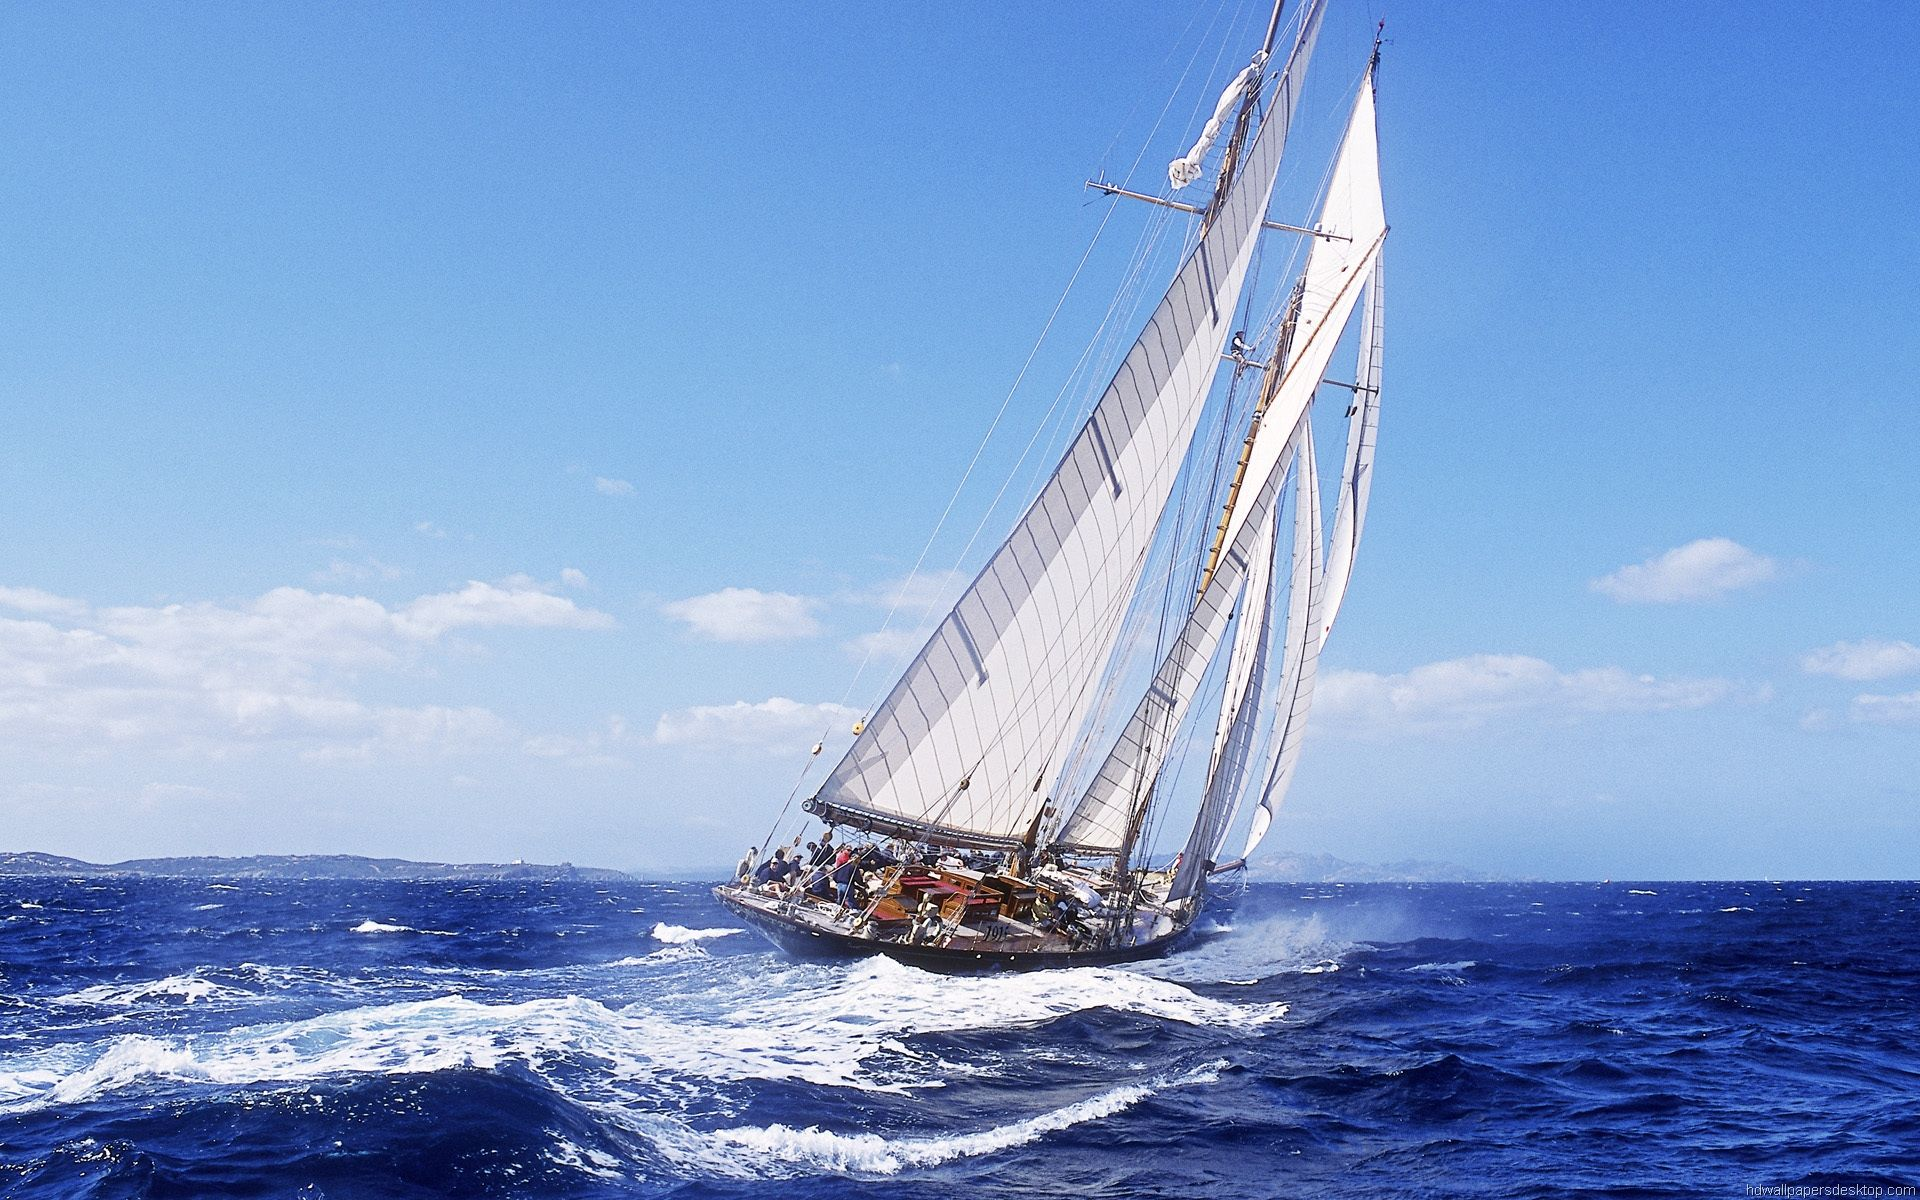 sailboats hd wallpapers get free top quality sailboats hd wallpapers for your desktop pc background